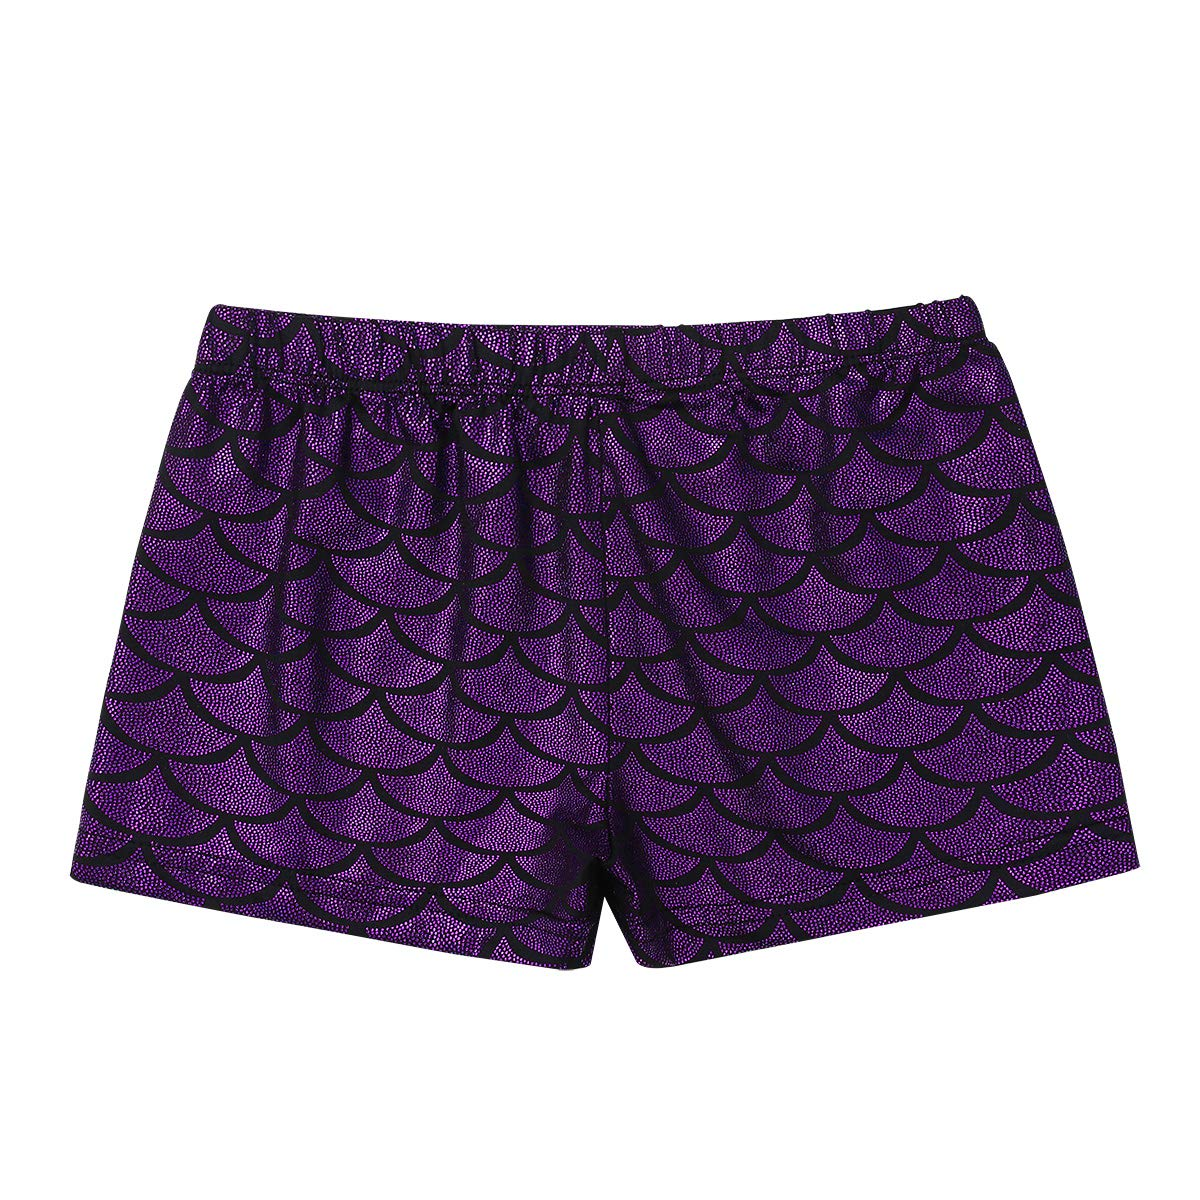 dPois Kids Girls Shiny Mermaid Scales Sports Workout Gym Dance Shorts Gymnastic Hot Pants